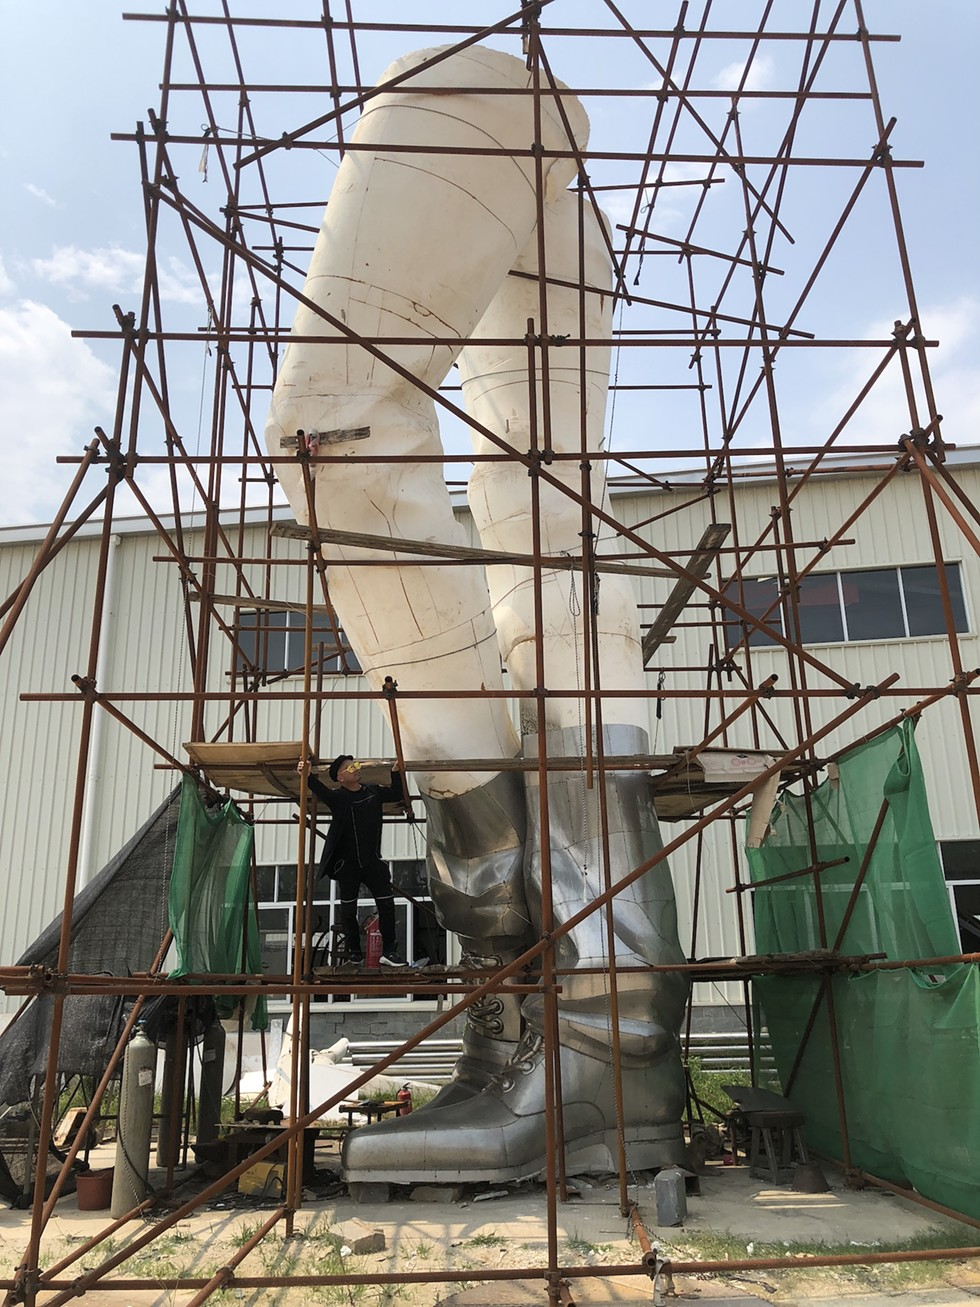 THROUGH JAN. 3, 2021: 'JEFRË: POINTS OF CONNECTION,' ORLANDO MUSEUM OF ART - FLORIDA ARTIST JEFRË WORKING ON A 24-STORY-HIGH STANDING FIGURE. WHEN COMPLETED, IT WILL BE ONE OF THE WORLD'S TALLEST ARTWORKS. [PHOTO COURTESY ORLANDO MUSEUM OF ART]